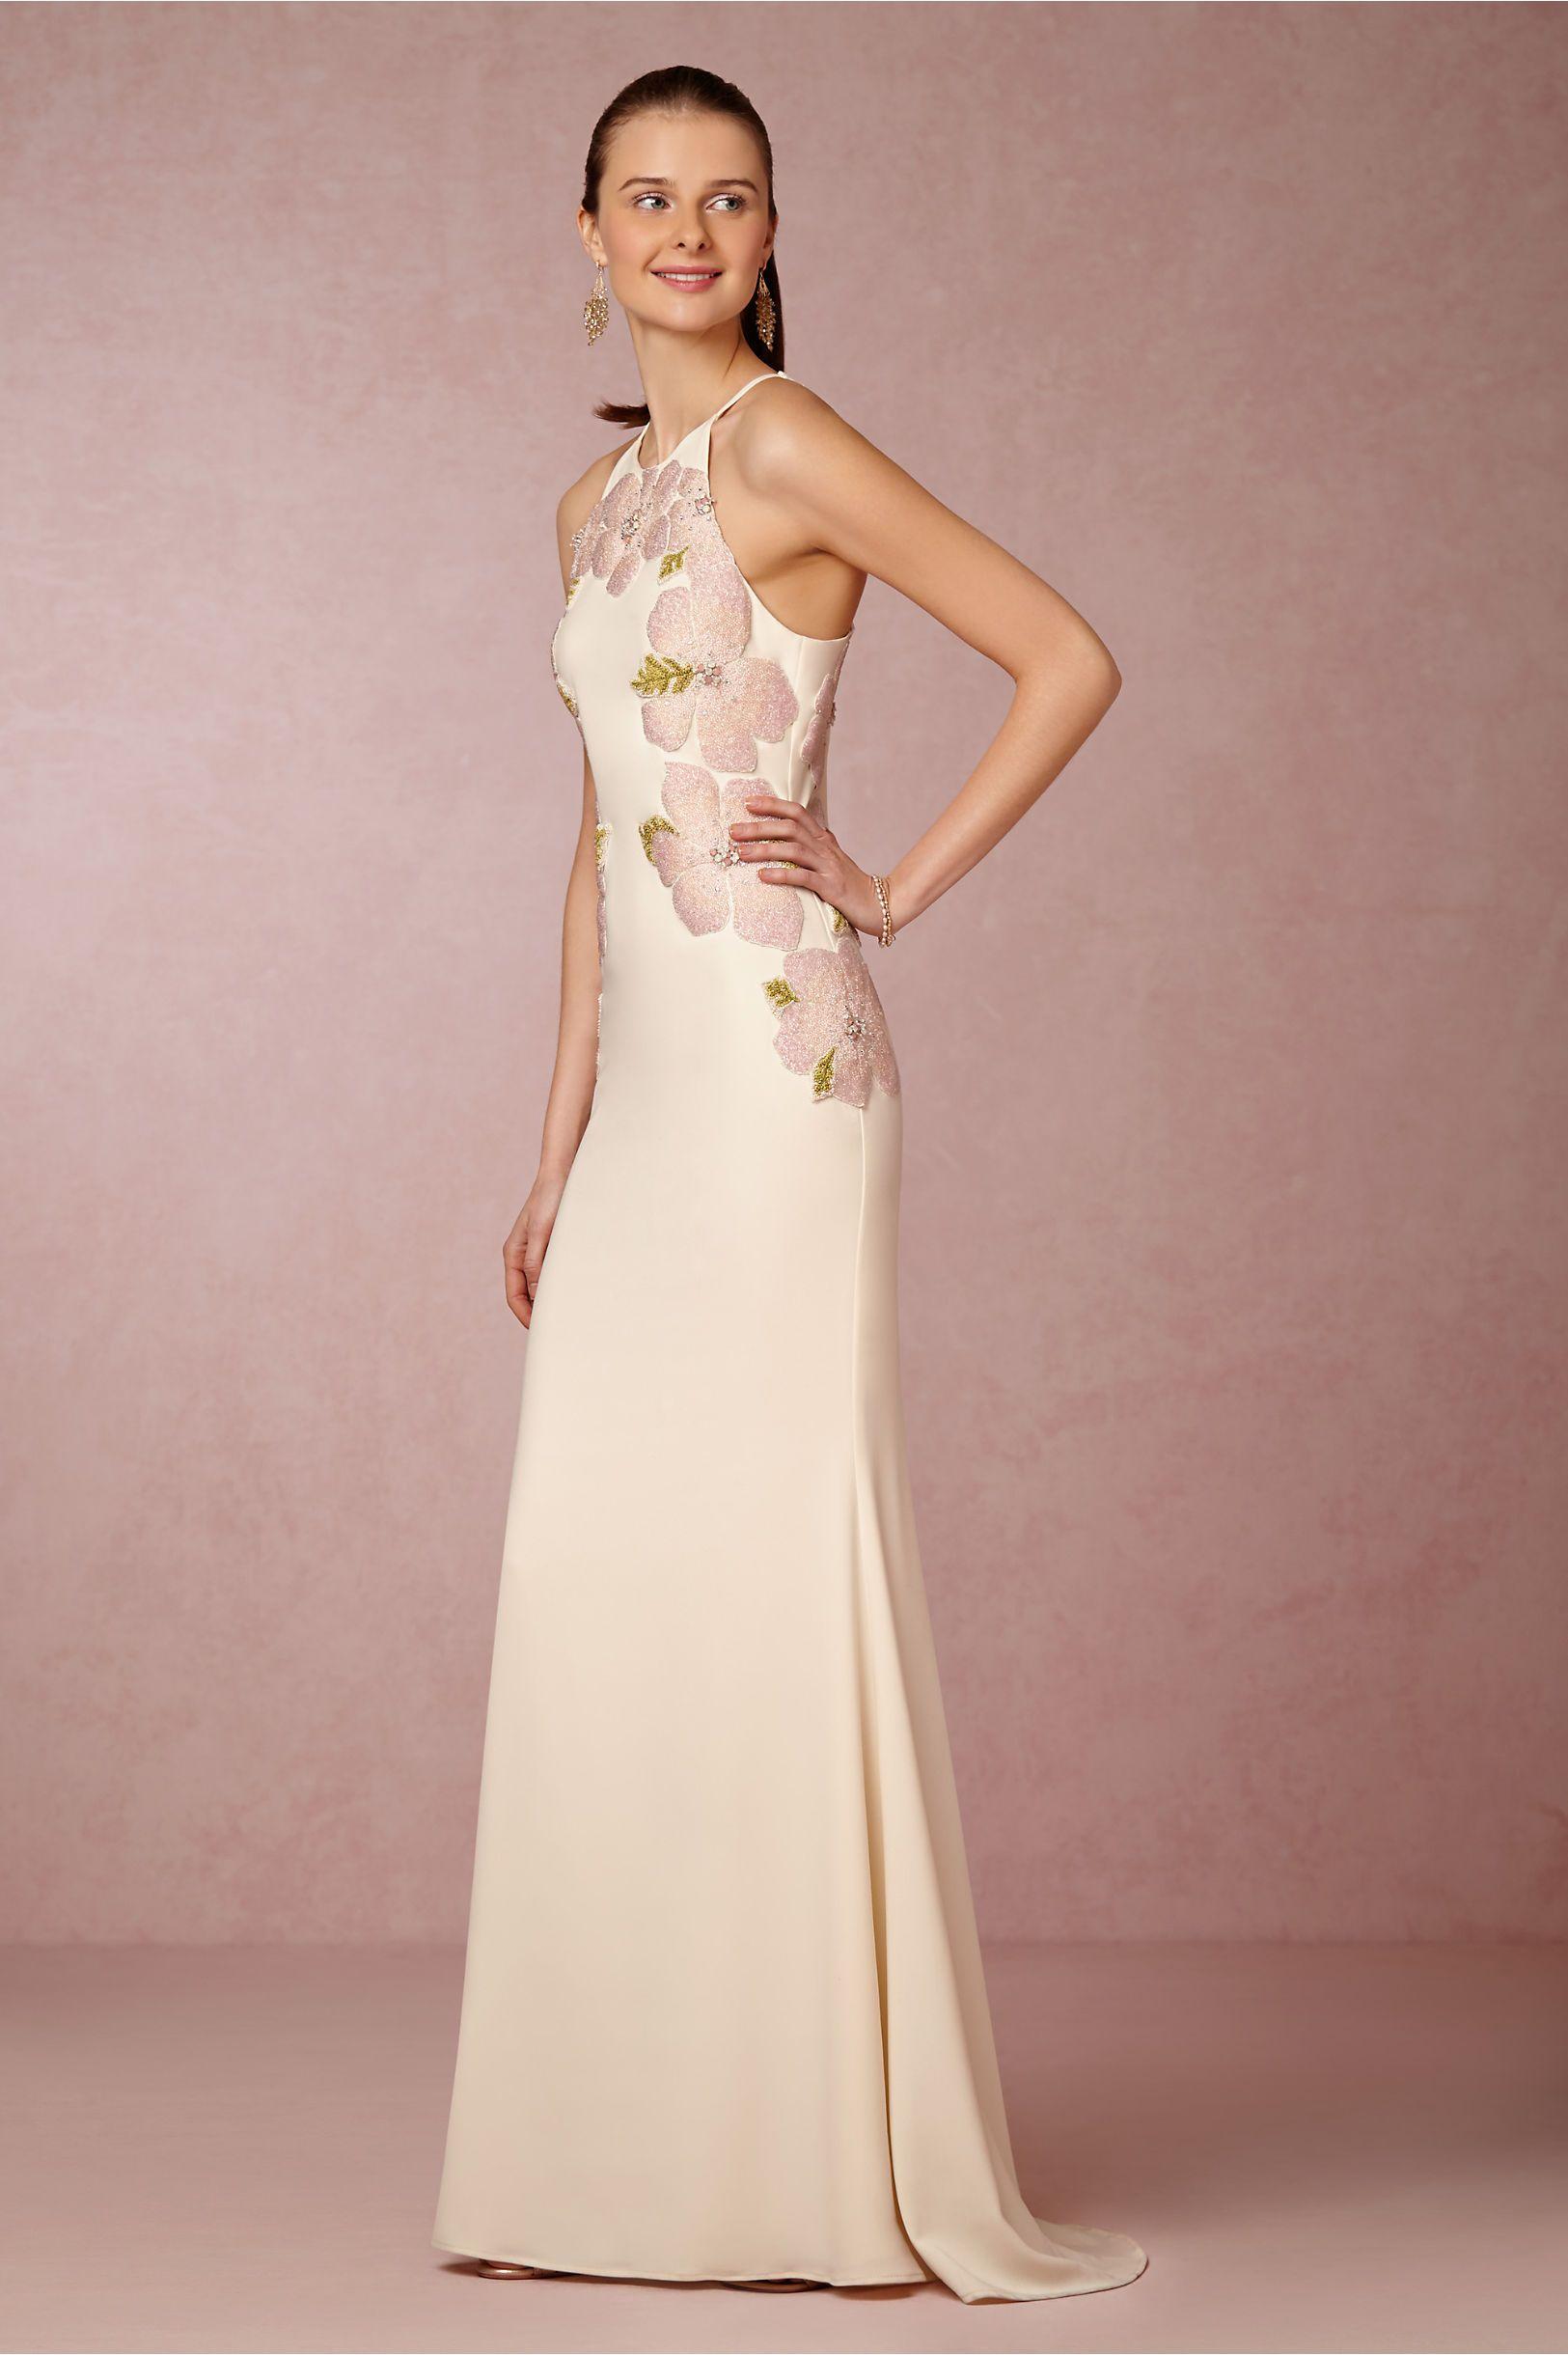 Calypso Gown by Badgley Mischka from BHLDN | <3 Fab Gowns 2015 <3 ...